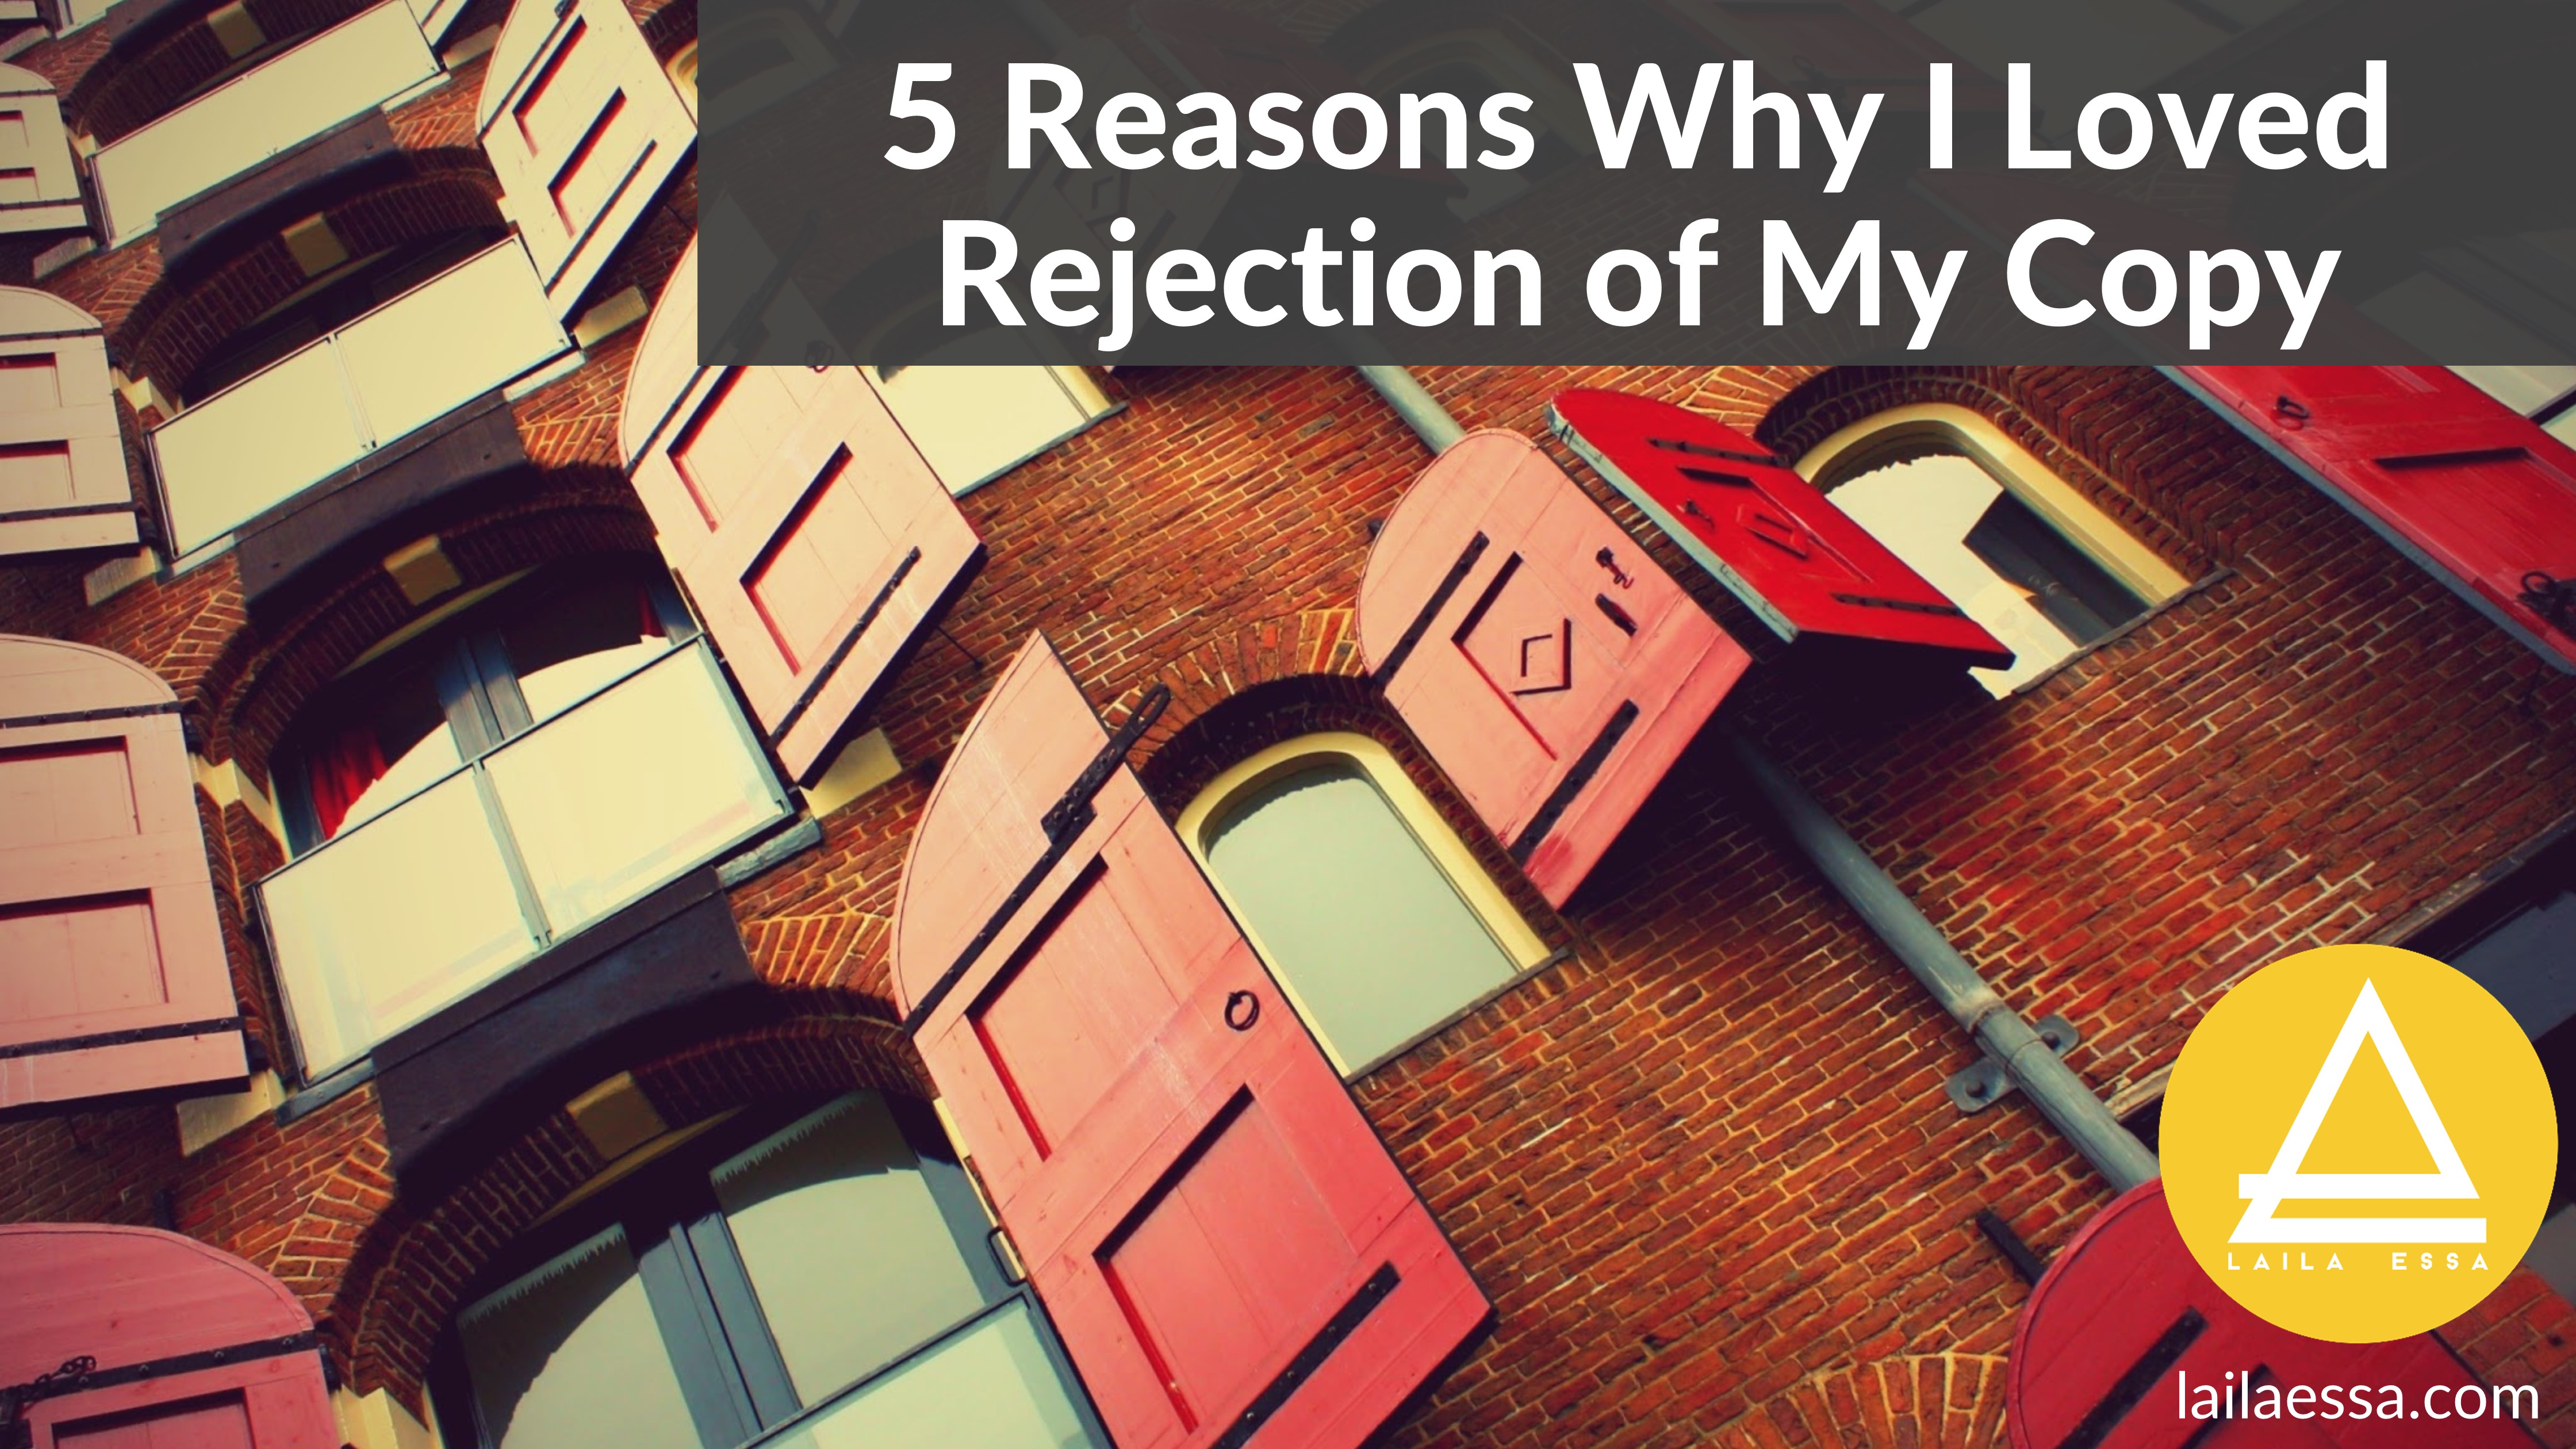 Reasons why I loved rejection of my copy as copywriter